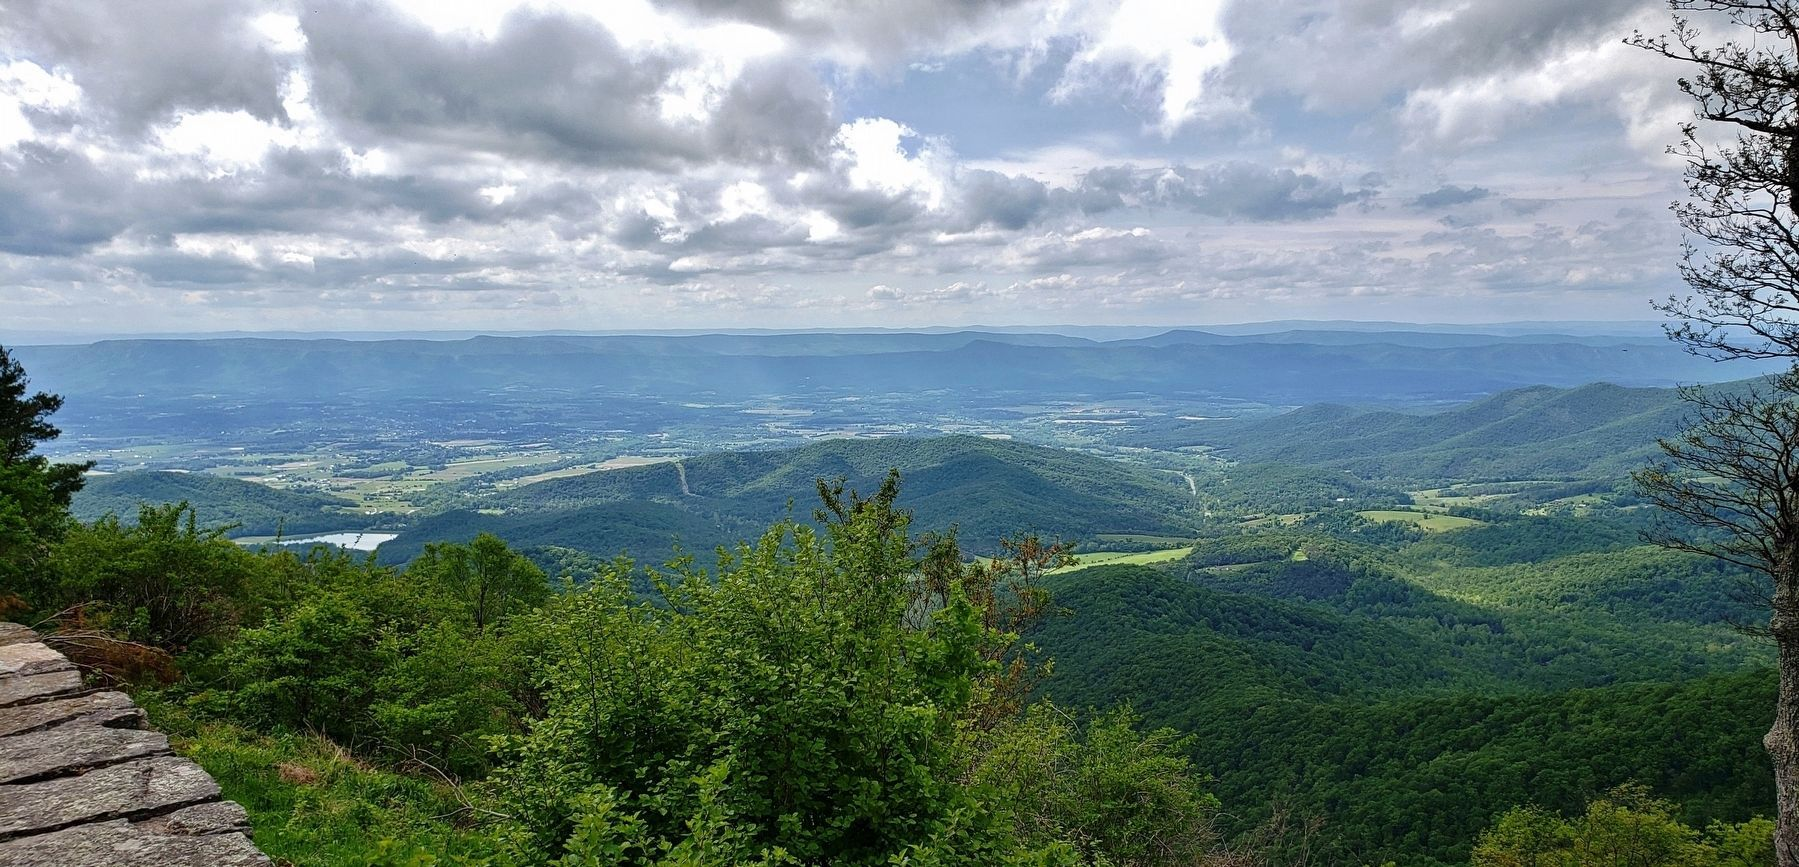 Blue Ridge Mountains & Shenandoah River Valley (<i>view northwest from marker</i>) image. Click for full size.